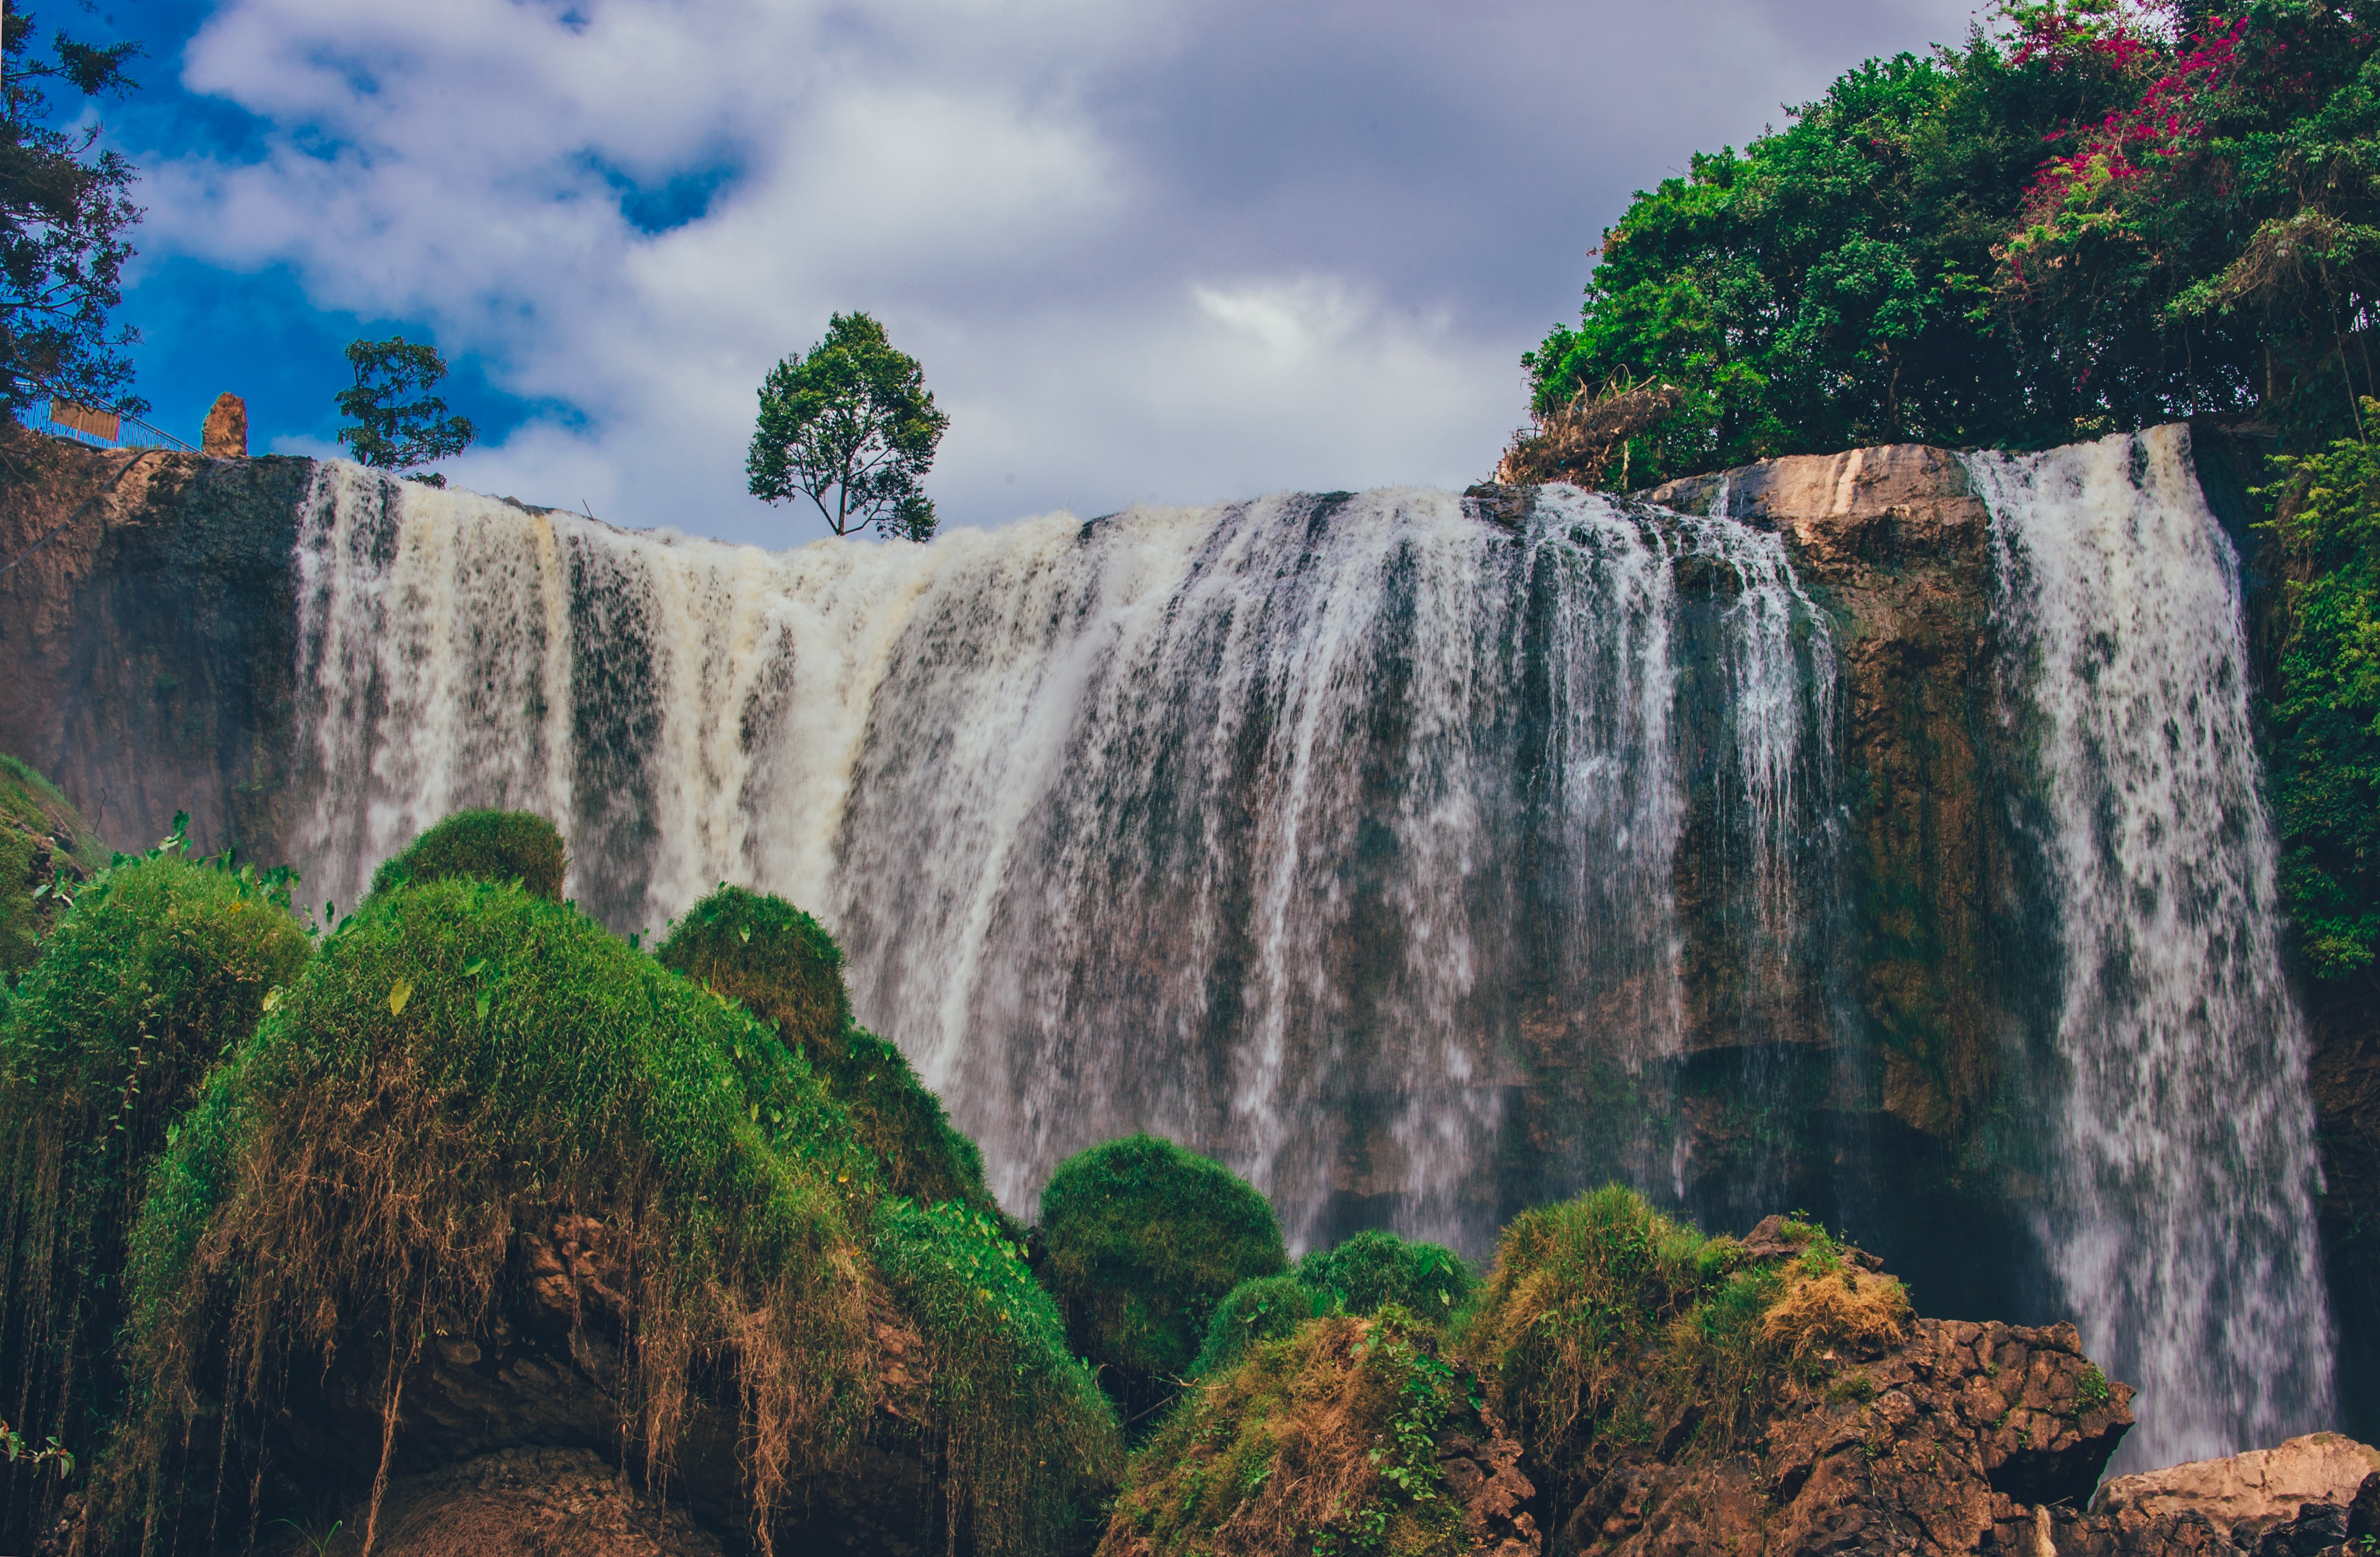 Waterfalls, Clouds, Park, Water, Trees, HQ Photo